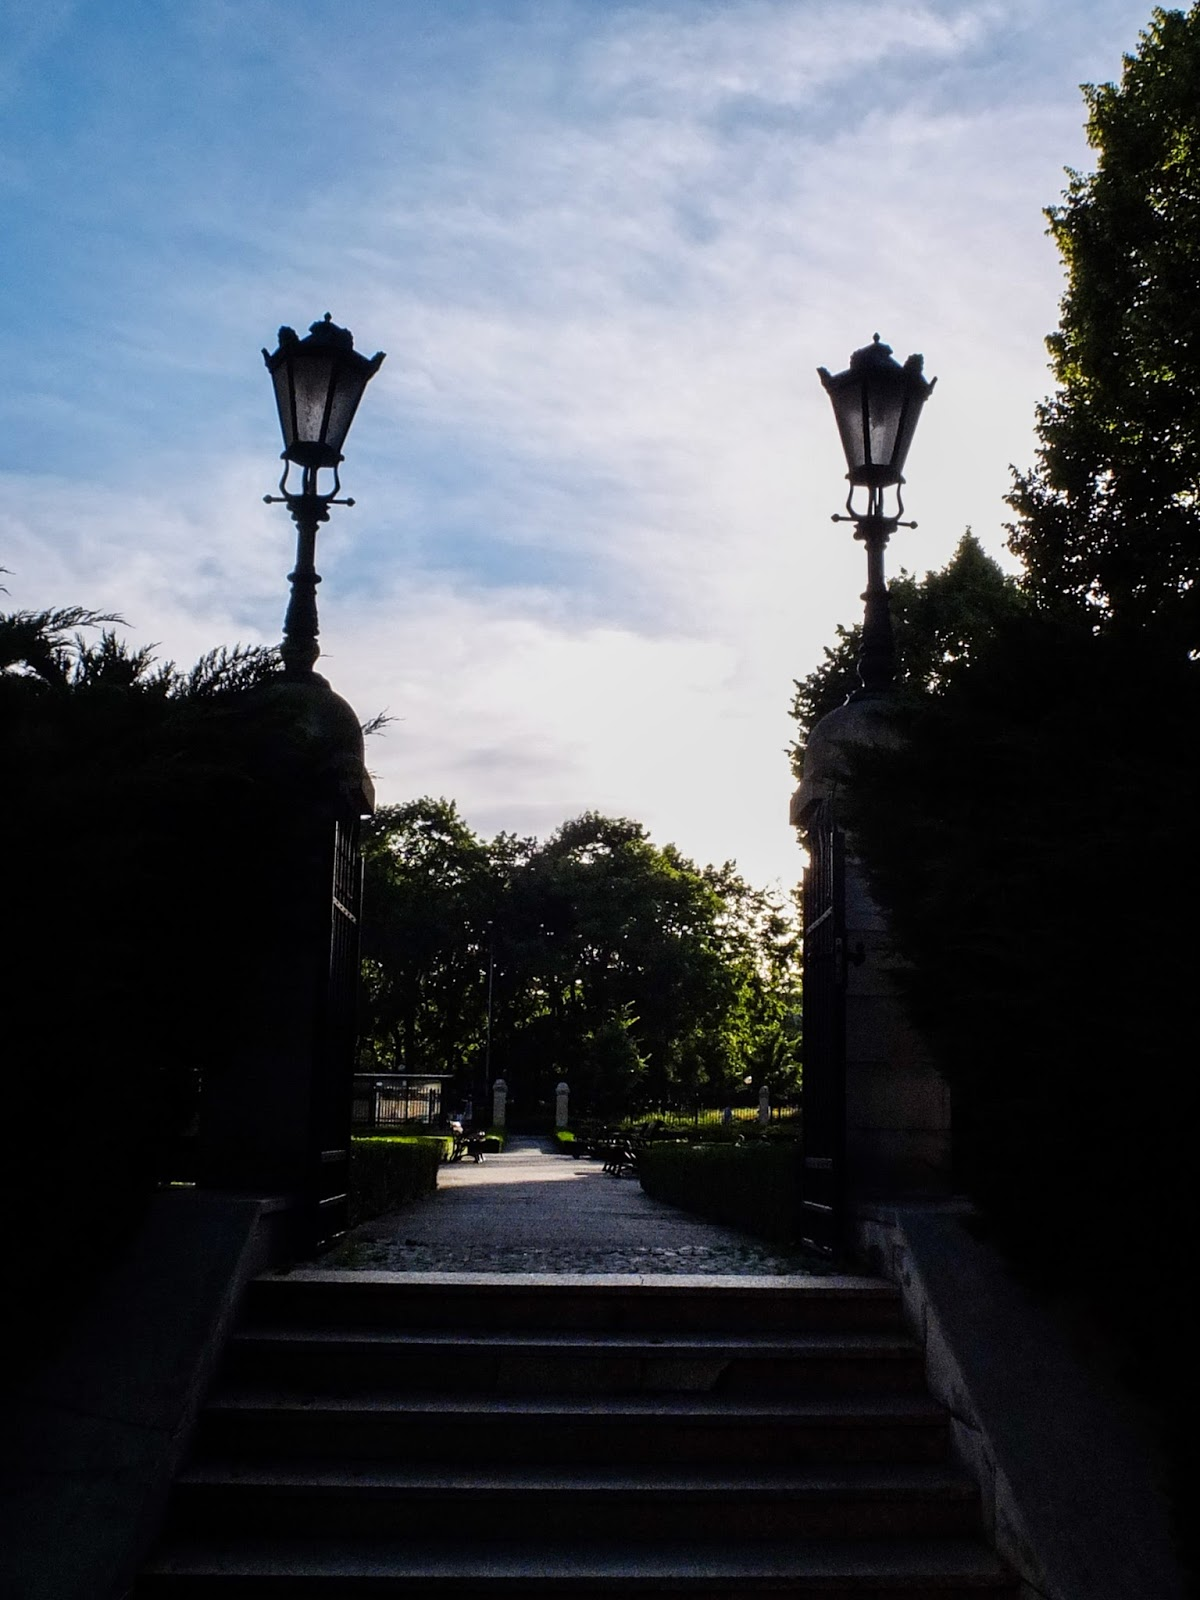 Steps and entrance to the garden on castle grounds in Poznań.